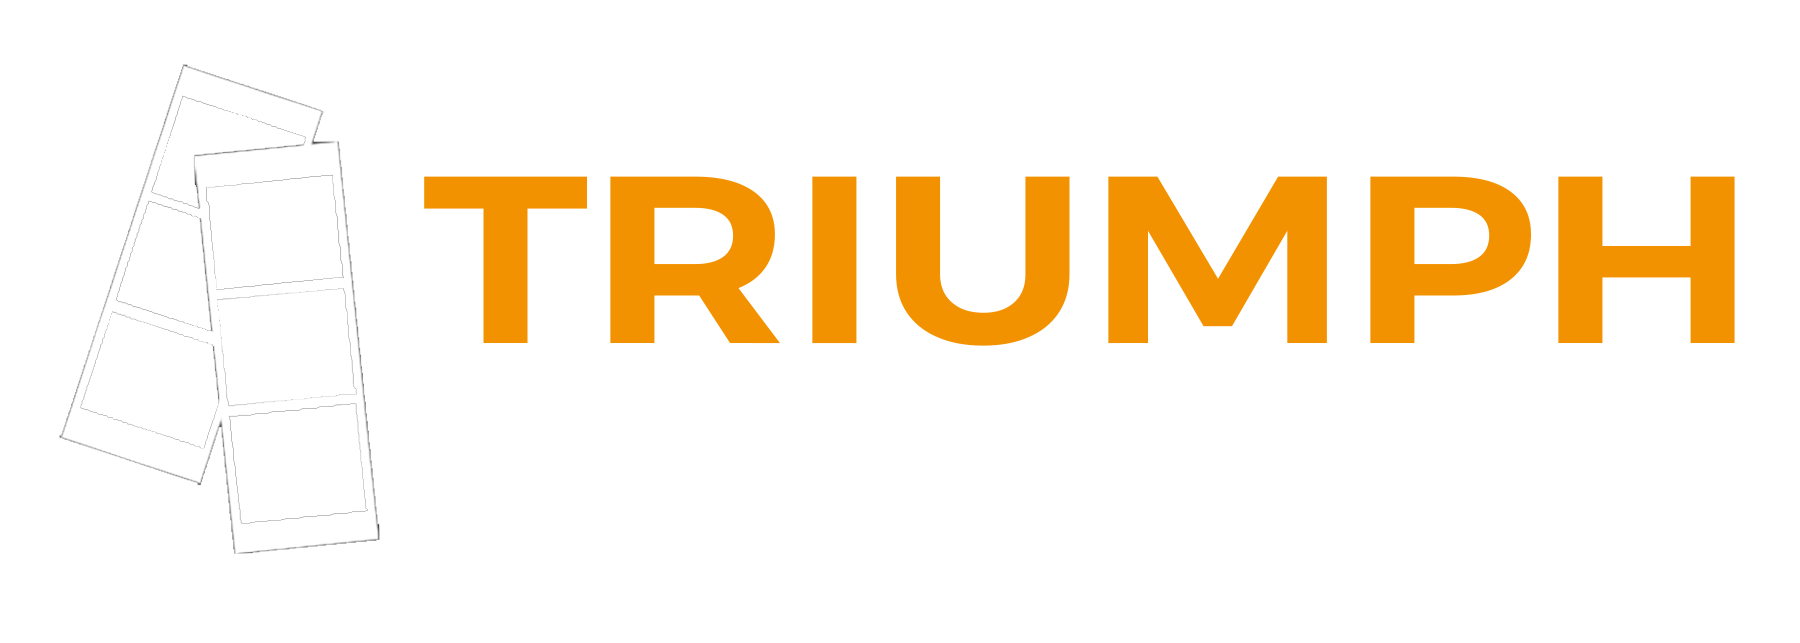 TriumphLogoFinalTransparent